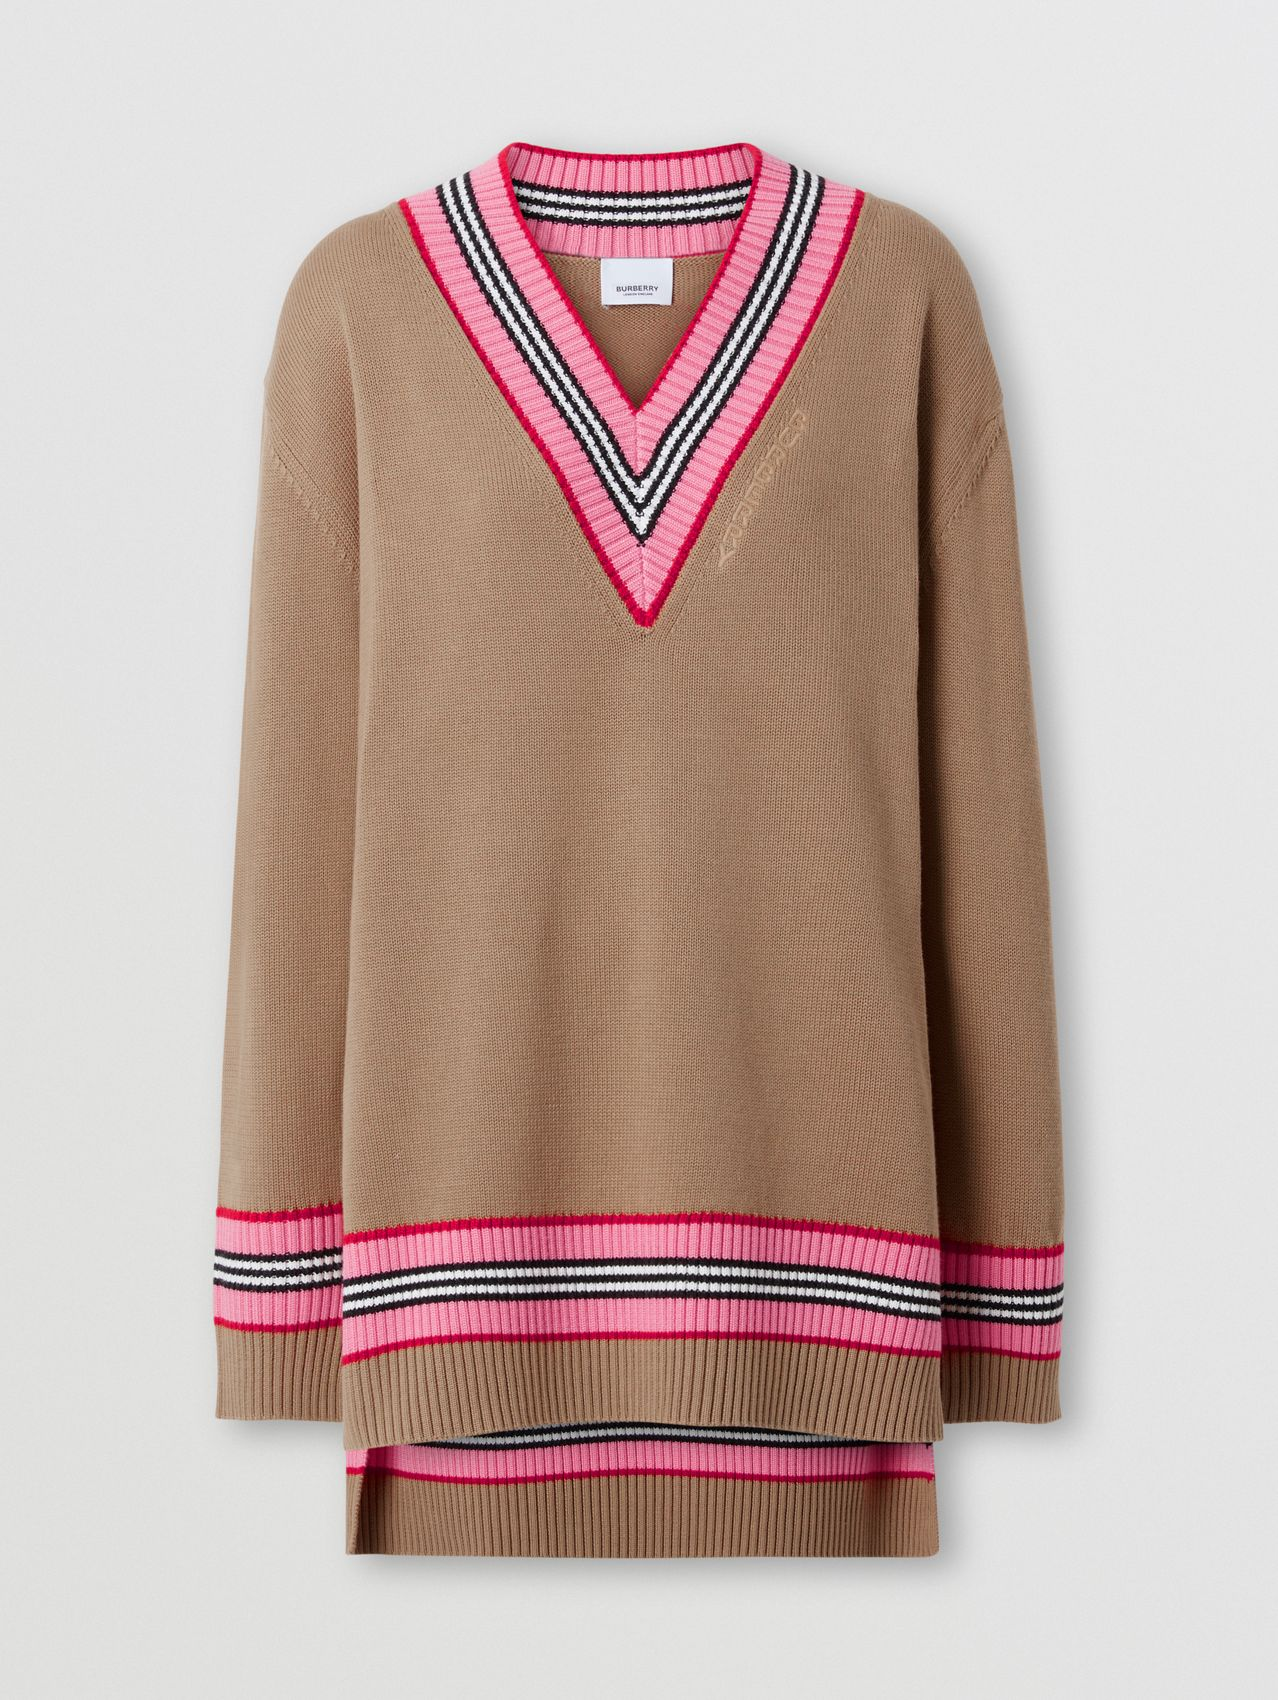 Cotton Oversized Cricket Sweater in Camel